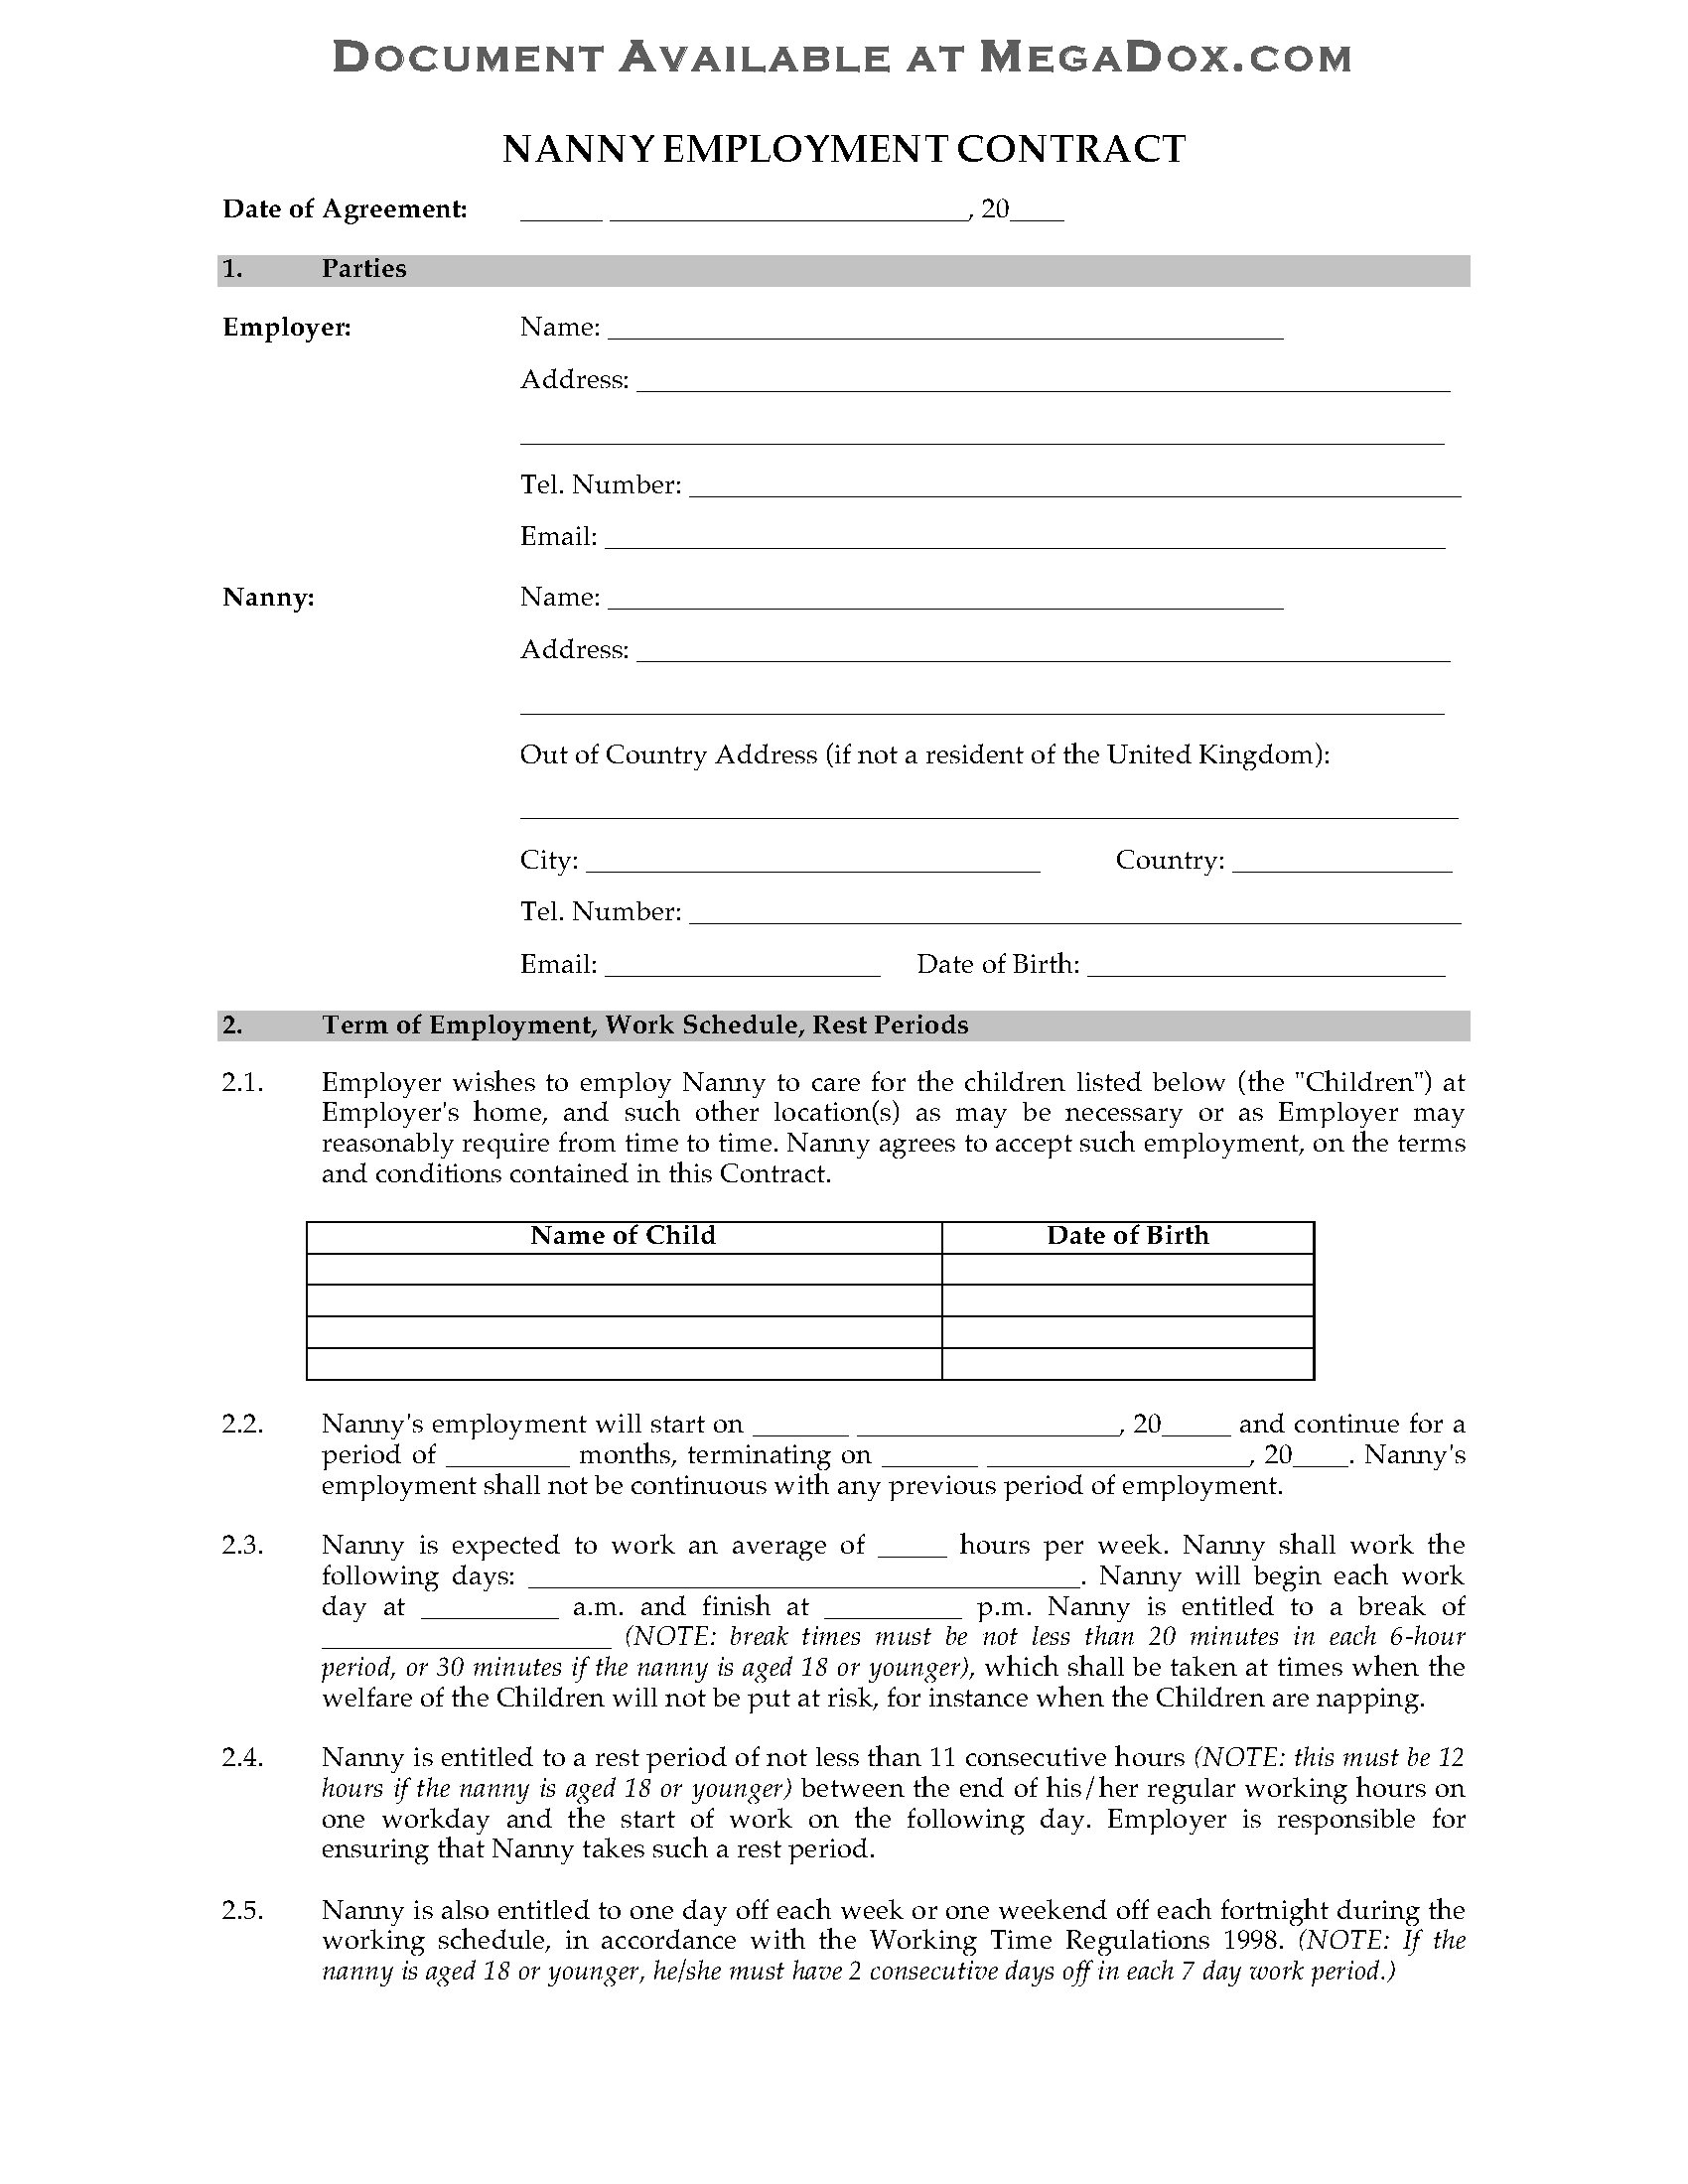 uk nanny employment contract